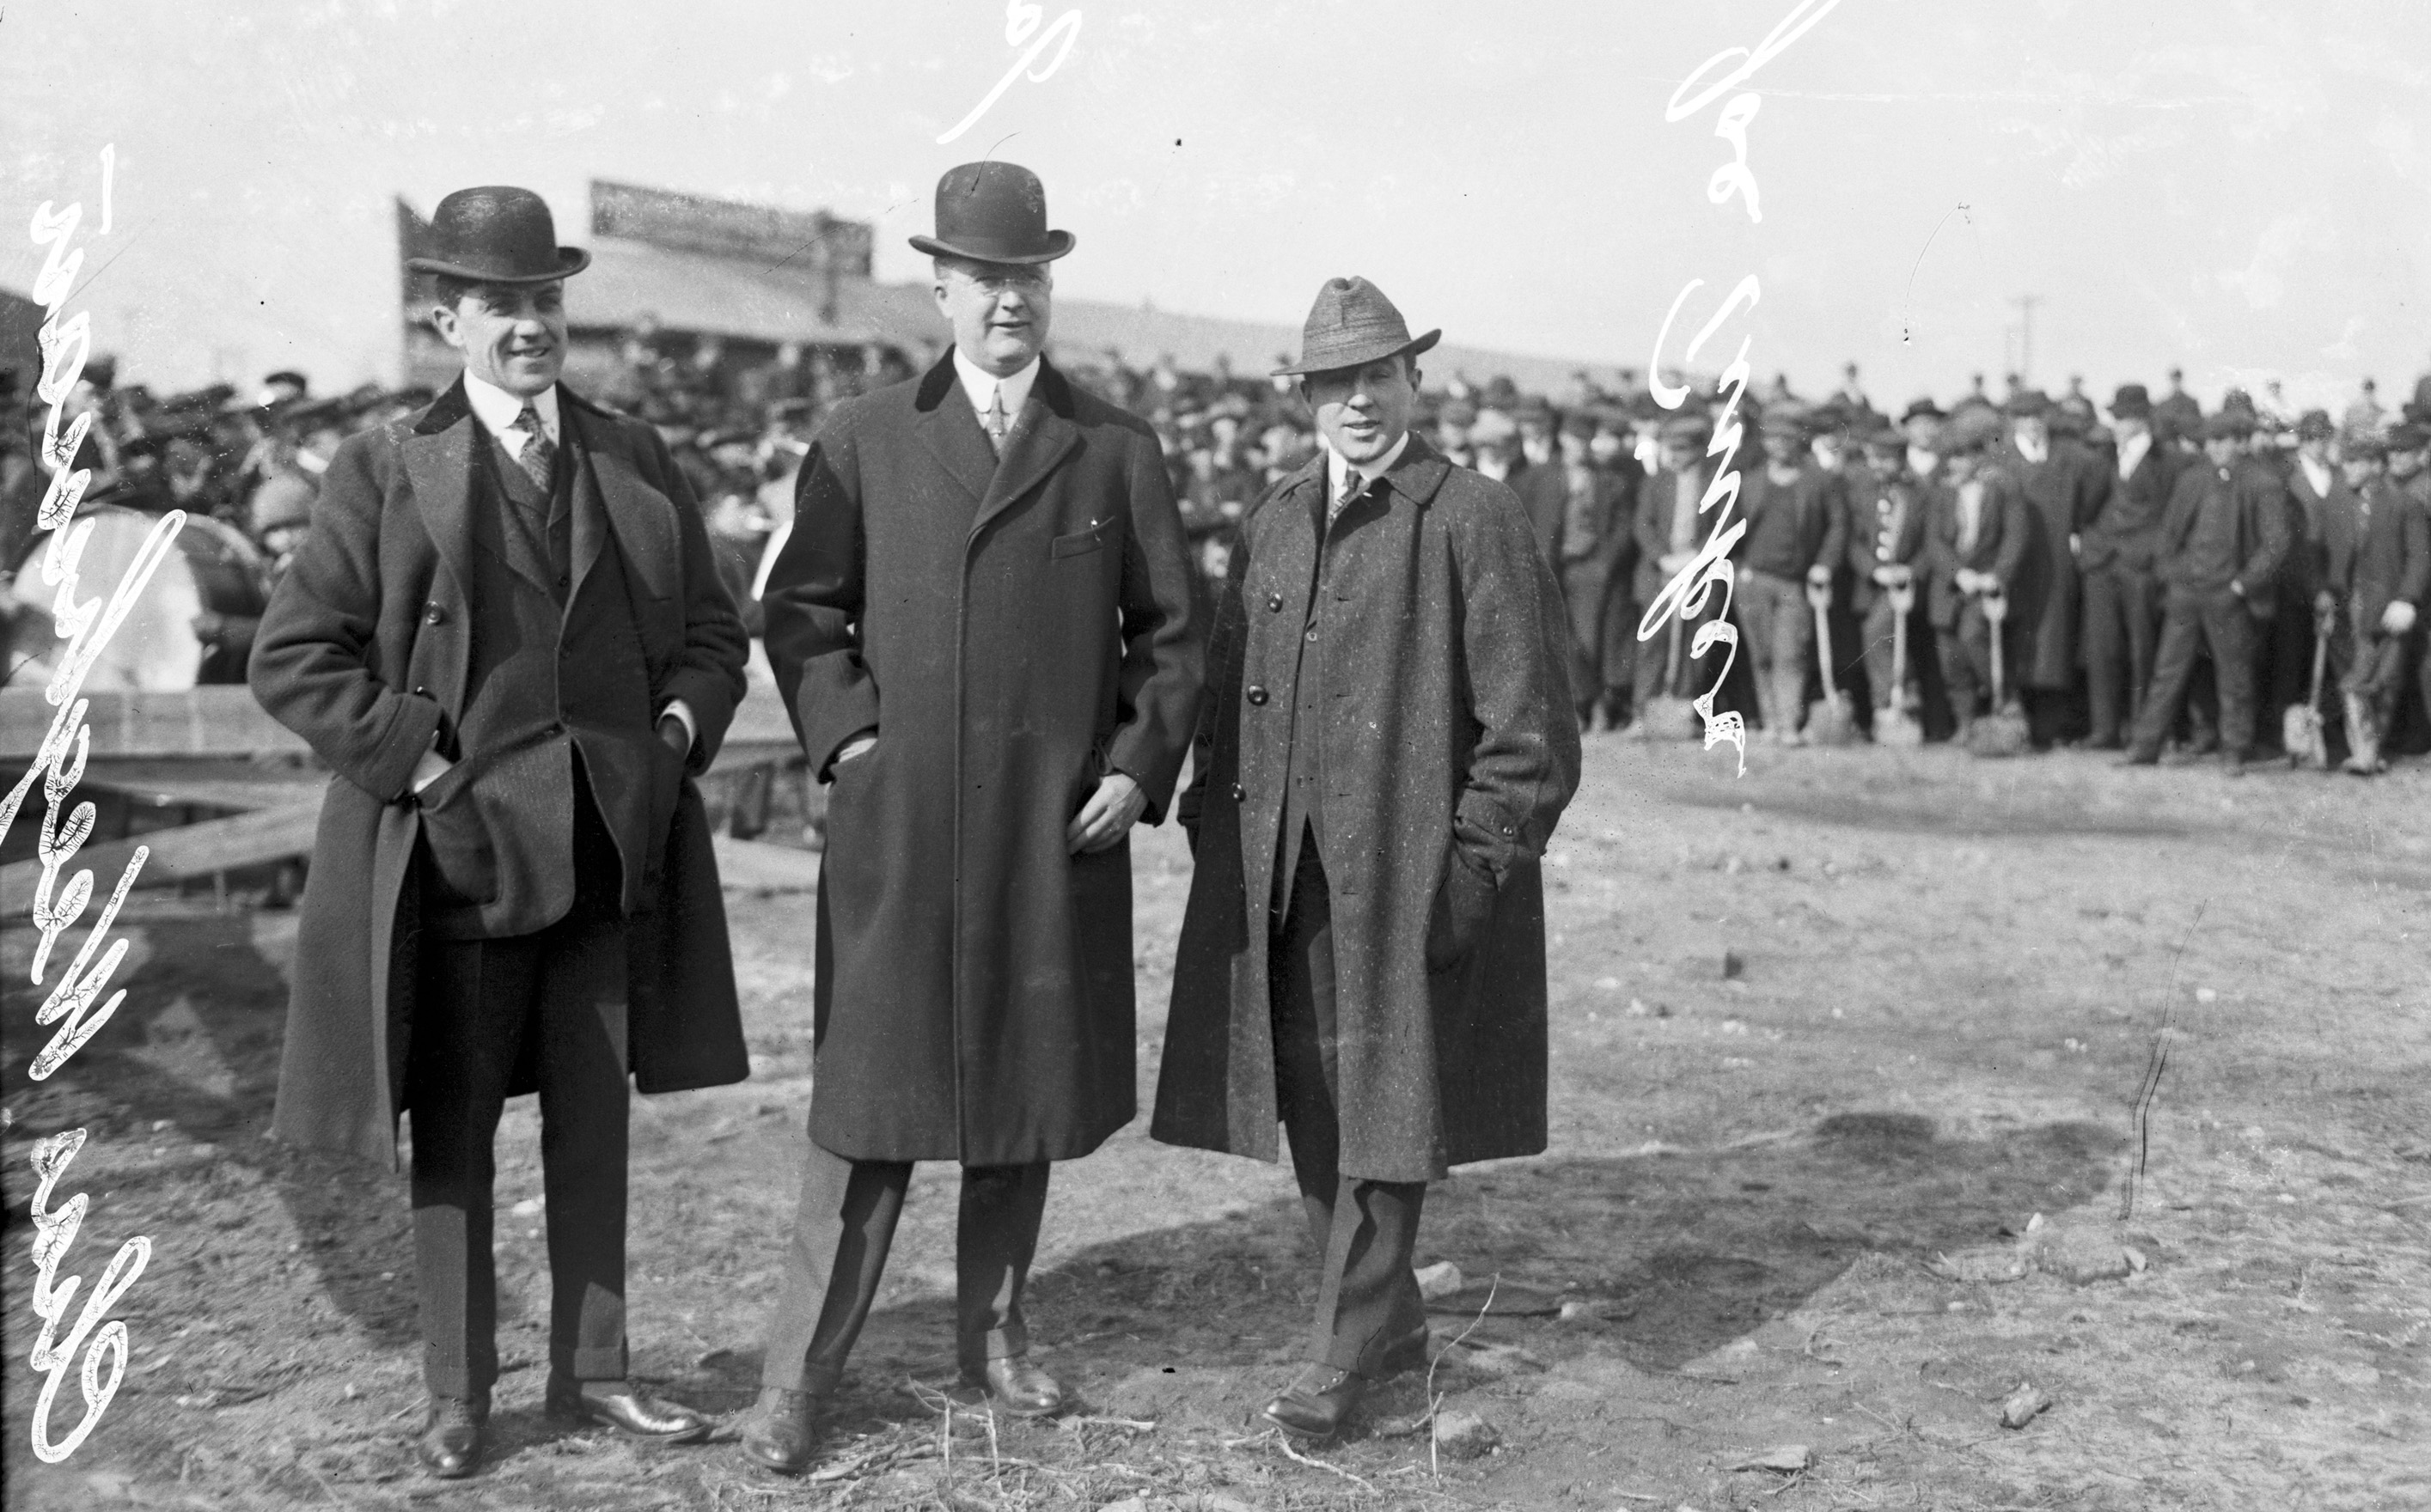 In a century at Wrigley, innovations abound